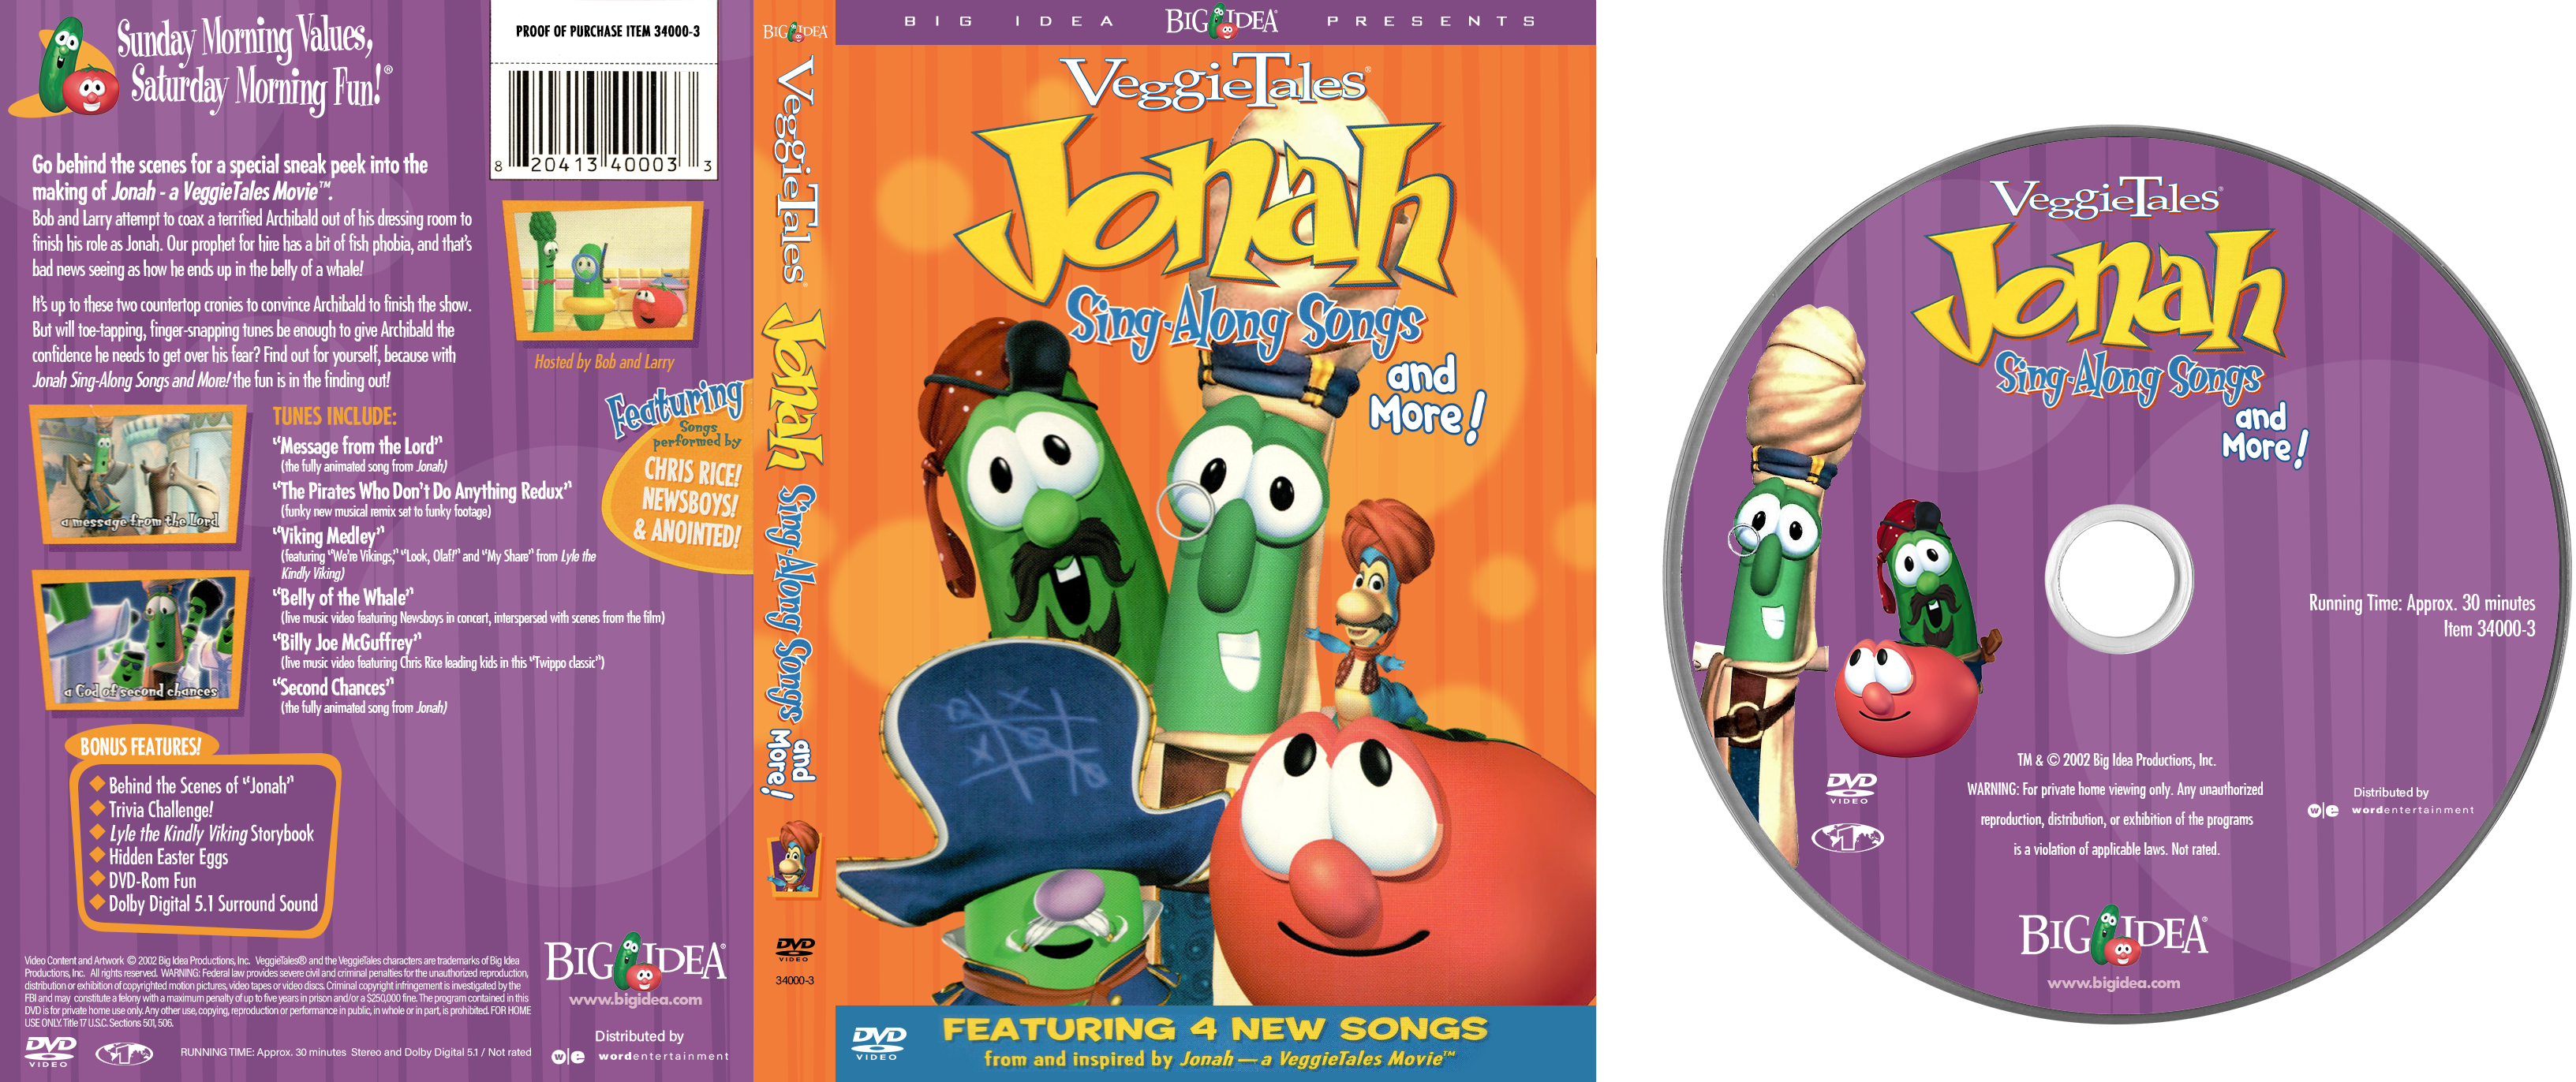 Veggietales Jonah Sing Along Songs And More Dvd By Luxoveggiedude9302 On Deviantart